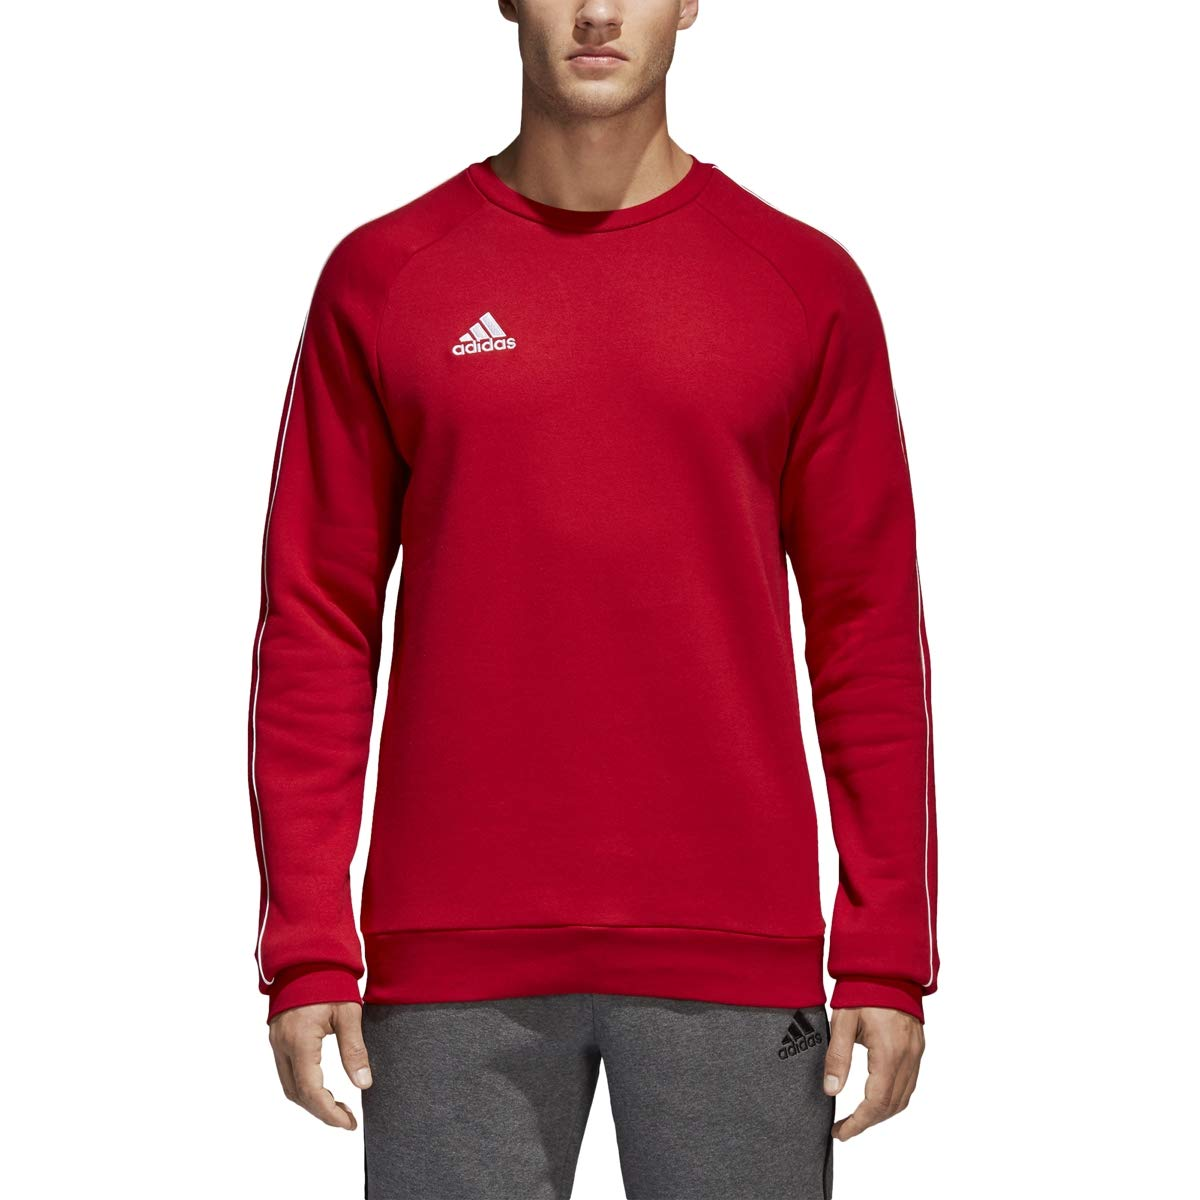 adidas Men's Core 18 Soccer Sweatshirt, Power Red/White, 3X-Large by adidas